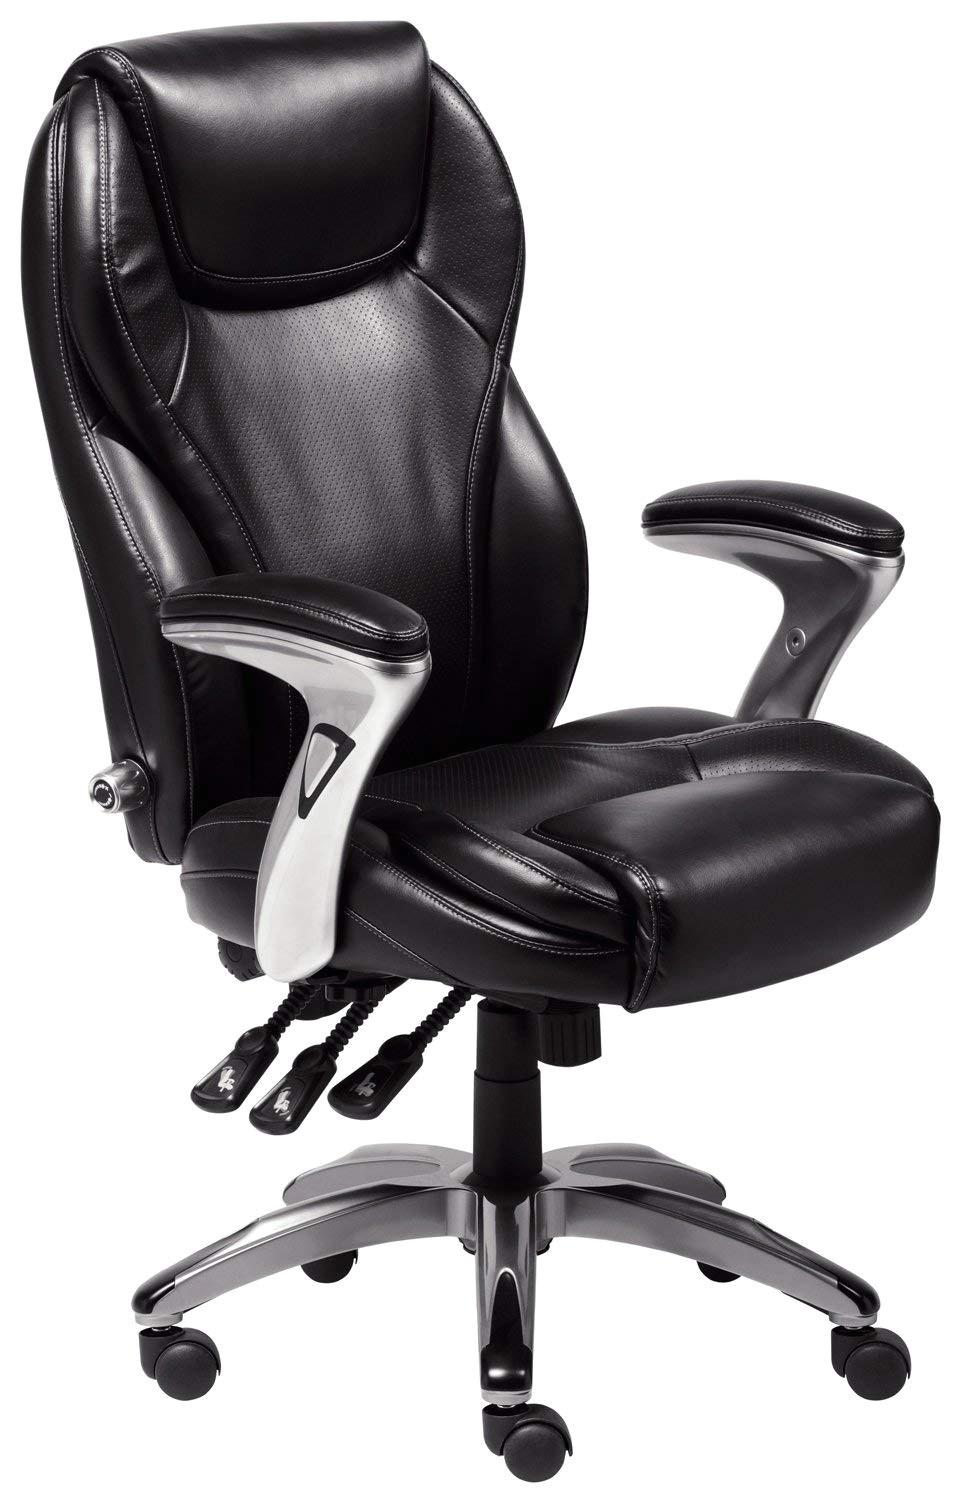 Executive Office Chair with Leg Rest Amazon Com Serta Bonded Leather Executive Chair Multi Paddle